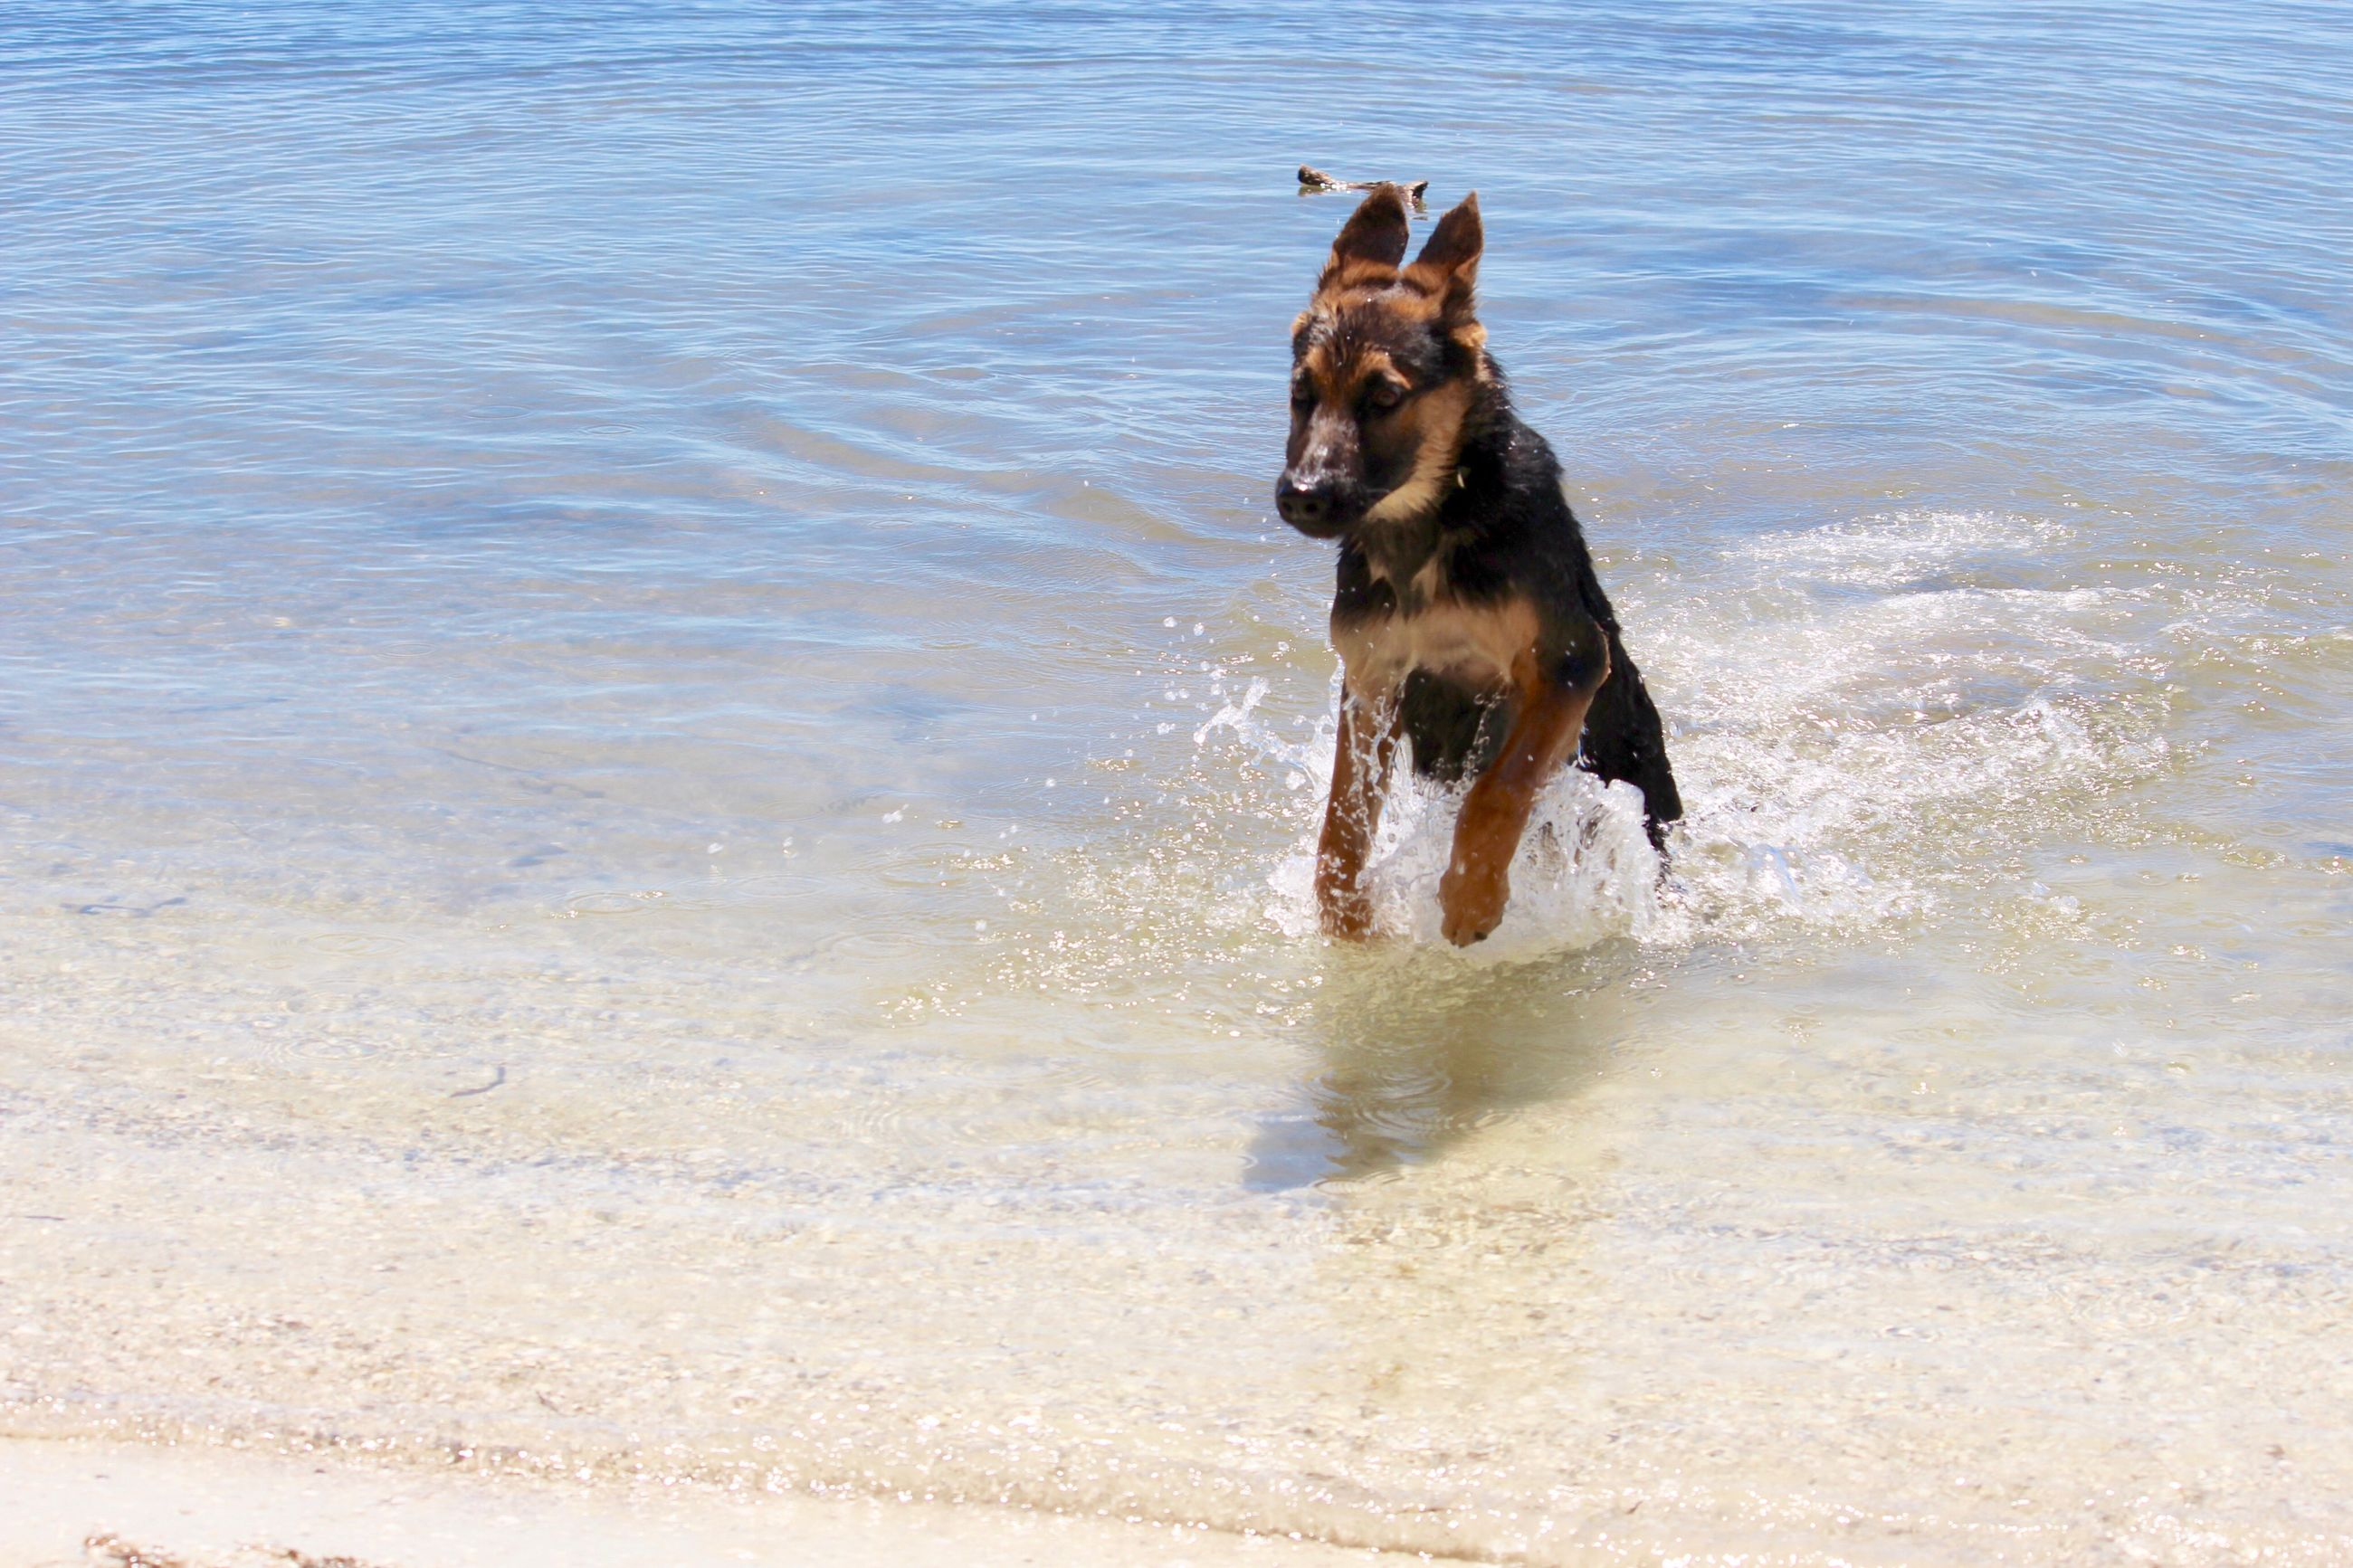 pets, dog, domestic animals, mammal, one animal, animal themes, water, pet collar, wet, sea, splashing, motion, beach, running, canine, waterfront, day, outdoors, nature, mouth open